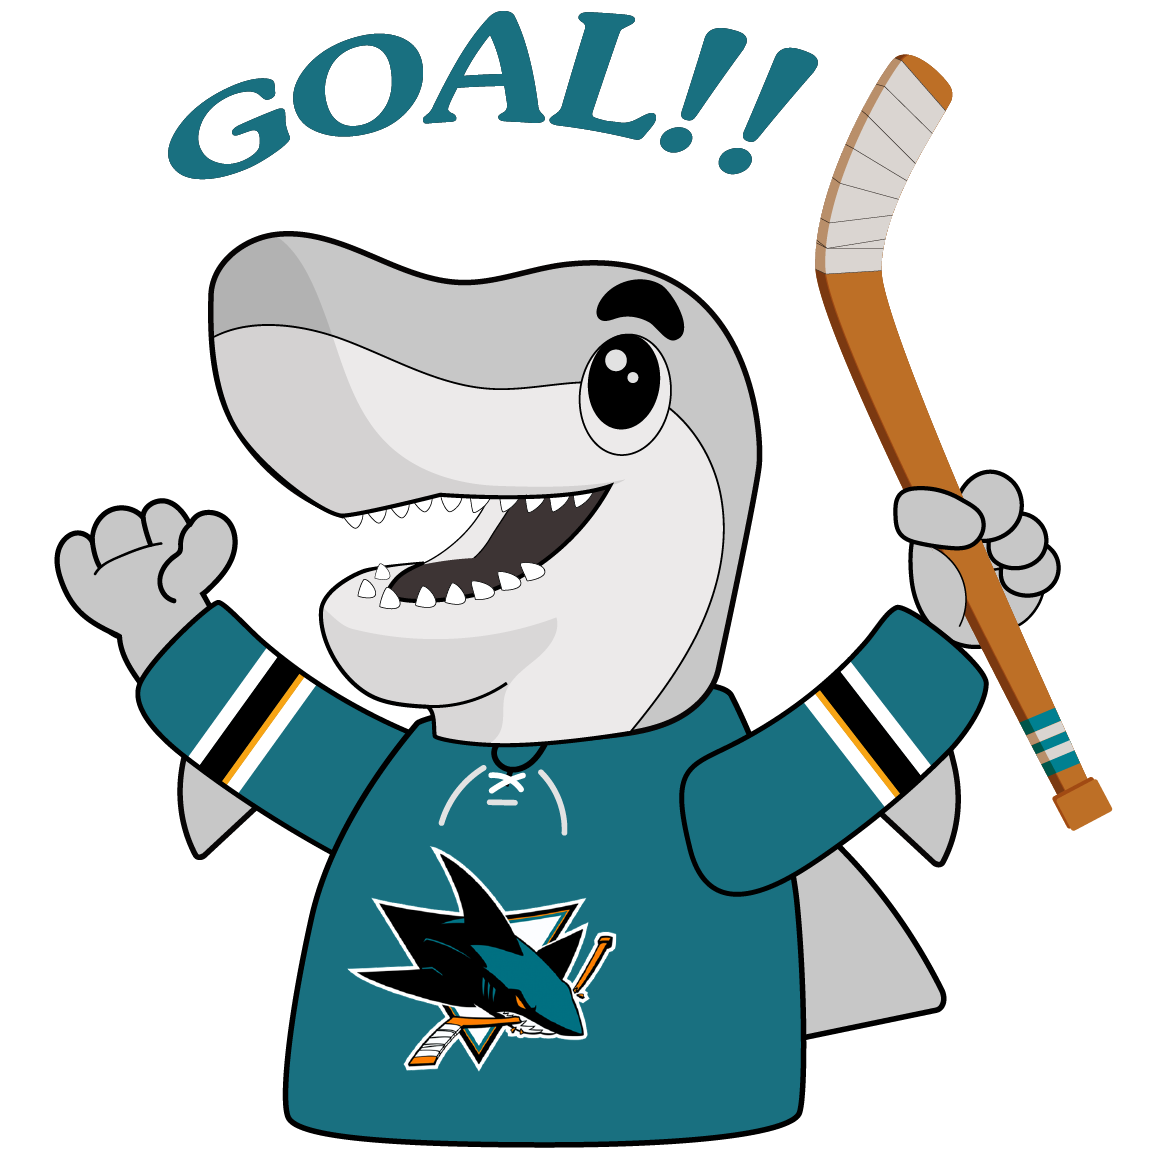 S.J. Sharkie Sticker Pack messages sticker-4